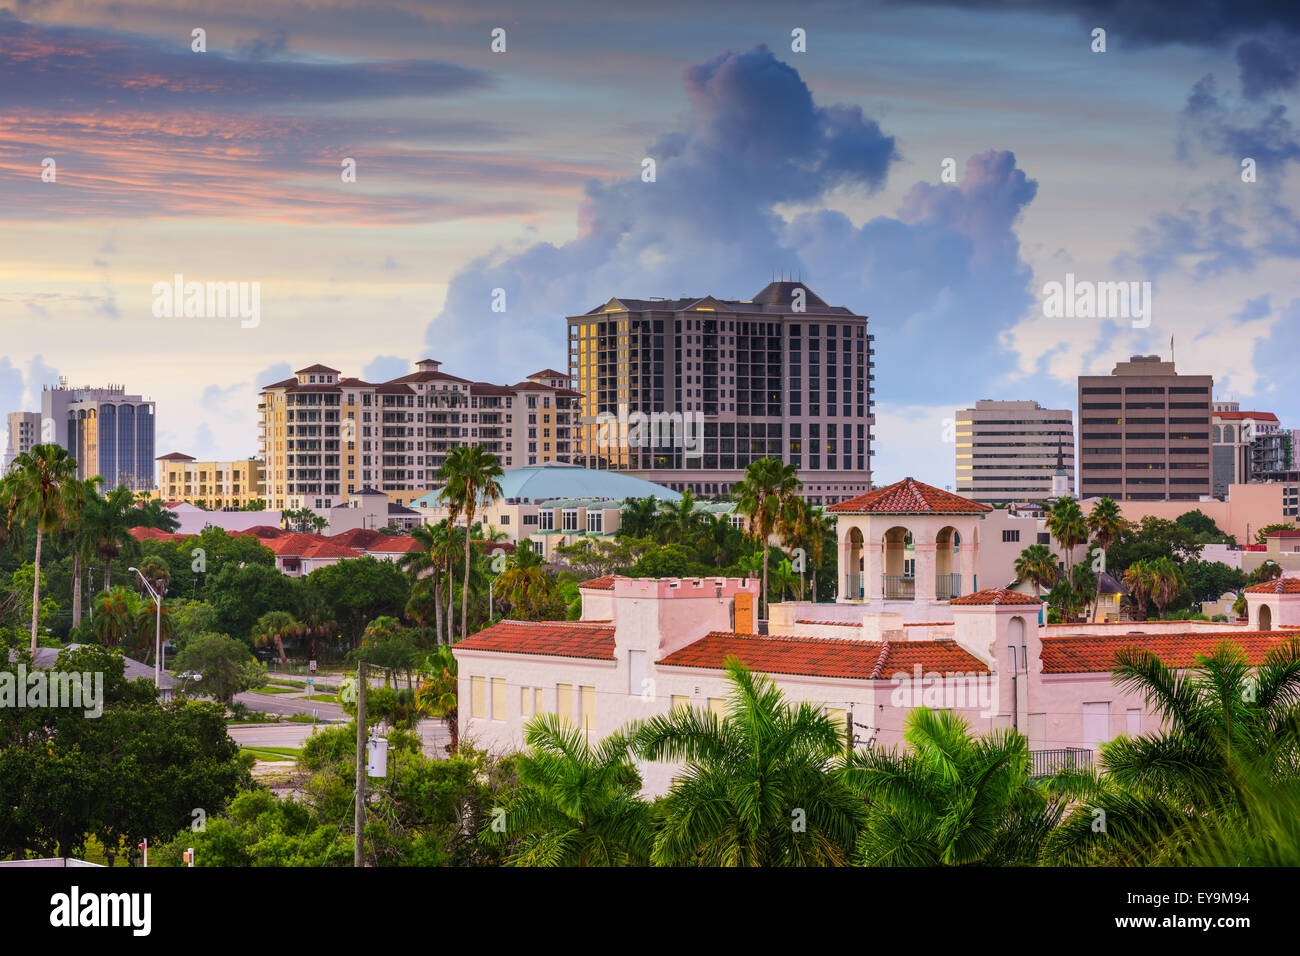 Sarasota, Florida, USA downtown skyline. - Stock Image